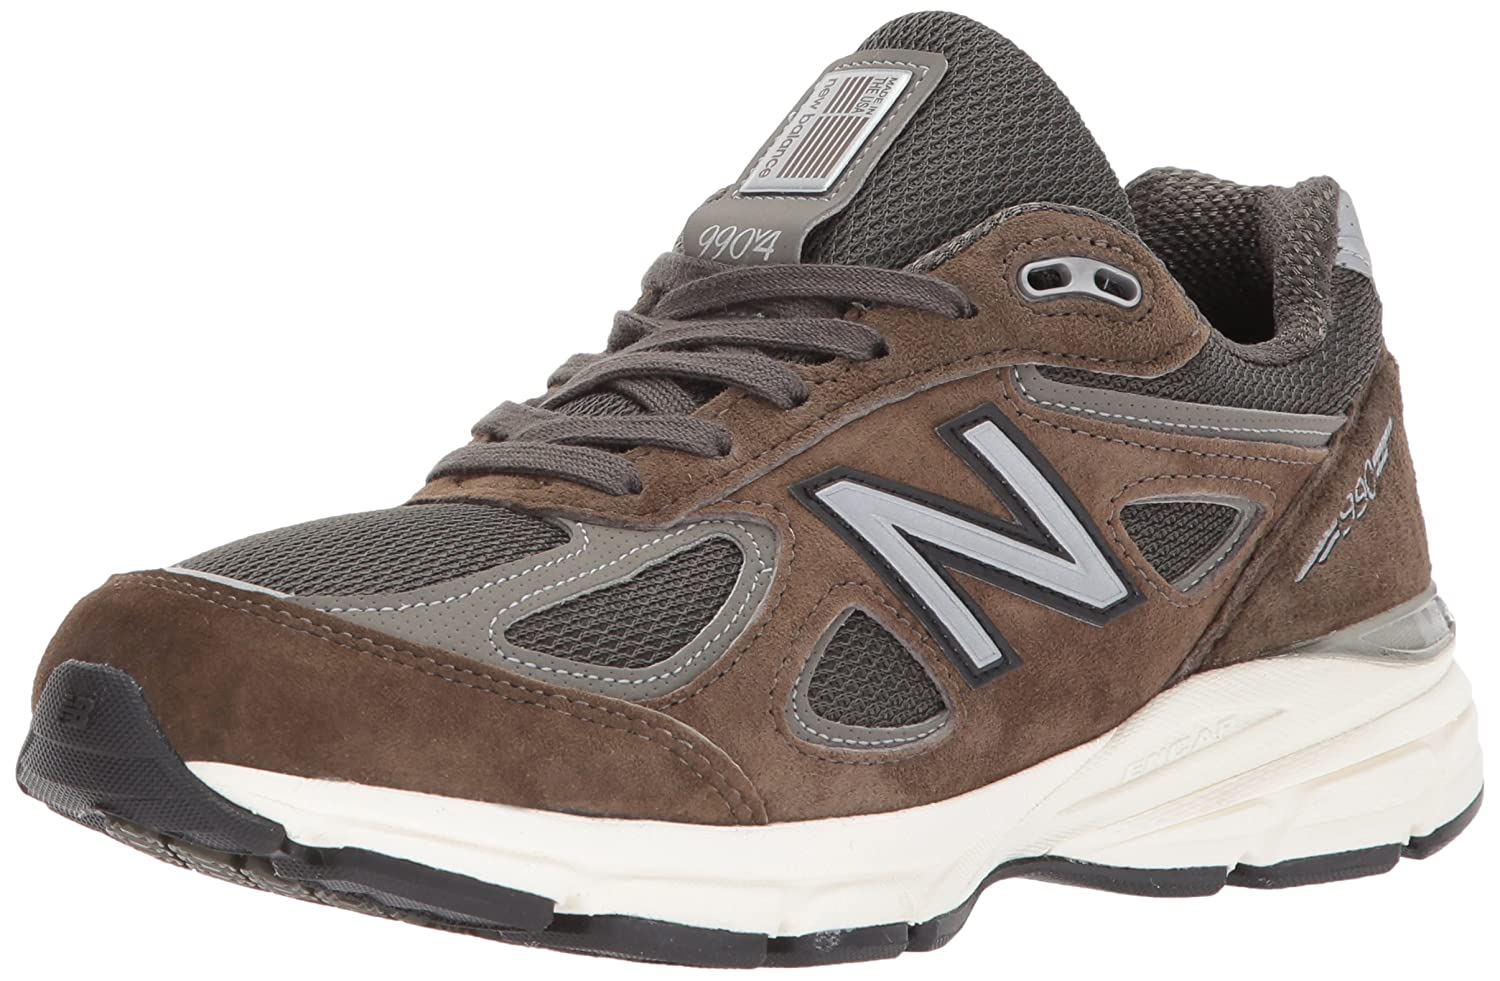 New Balance Women's 990v4 Running Shoe B01MRN3FEX 13 M US|Military Green/Military Green